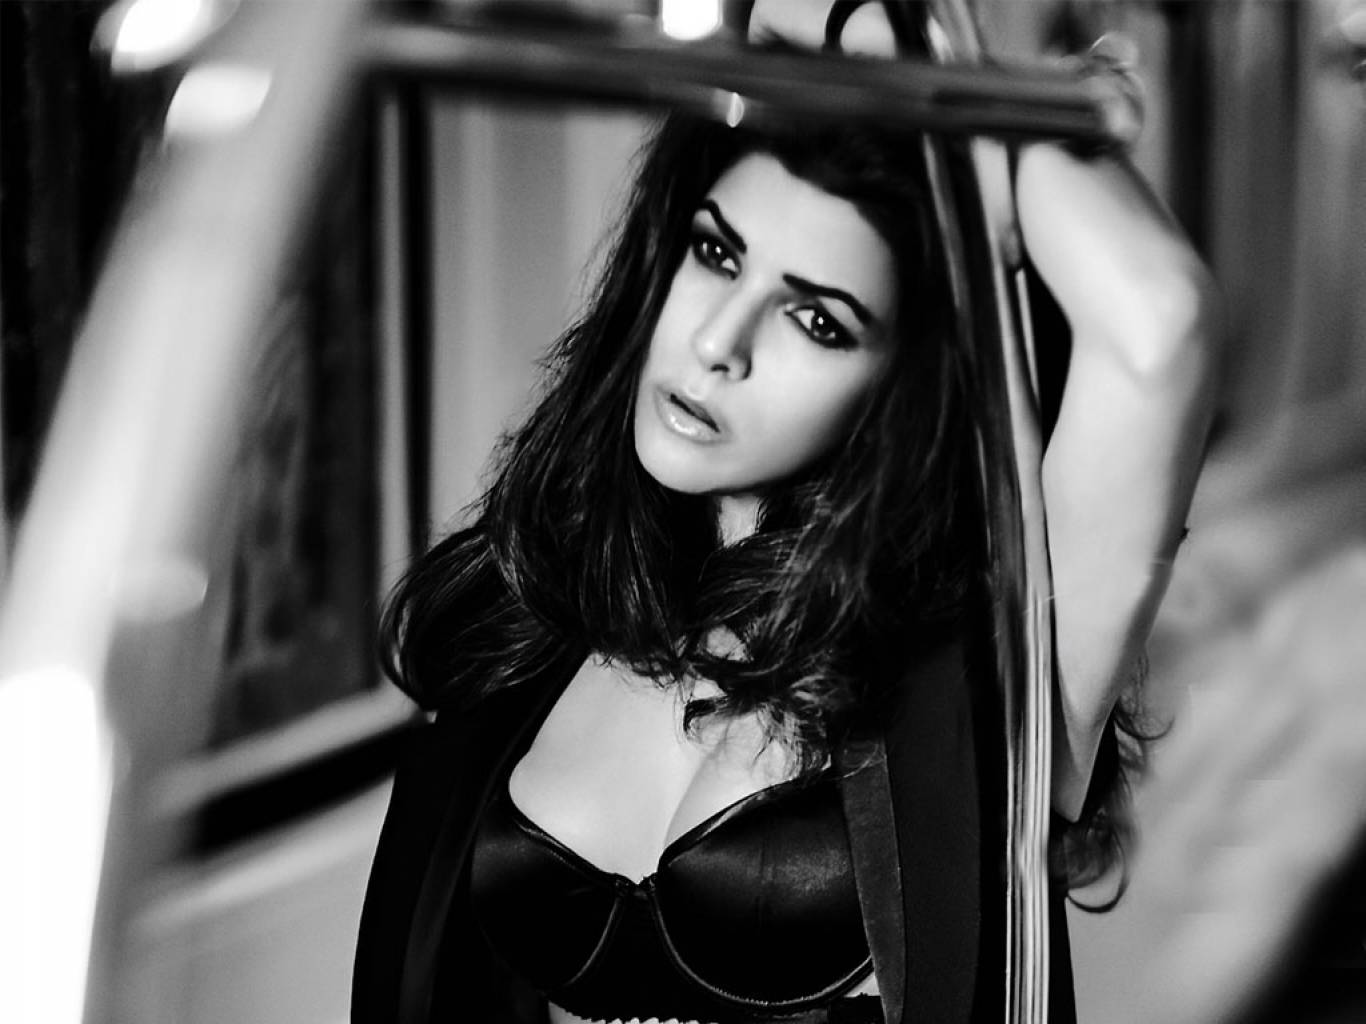 nimrat kaur husband namenimrat kaur instagram, nimrat kaur ahluwalia, nimrat kaur ahluwalia wiki, nimrat kaur ahluwalia instagram, nimrat kaur, nimrat kaur ravi shastri, nimrat kaur wiki, nimrat kaur movies, nimrat kaur homeland, nimrat kaur feet, nimrat kaur age, nimrat kaur husband, nimrat kaur biography, nimrat kaur husband name, nimrat kaur bikini, nimrat kaur ahluwalia biography, nimrat kaur father, nimrat kaur songs, nimrat kaur images, nimrat kaur ahluwalia age